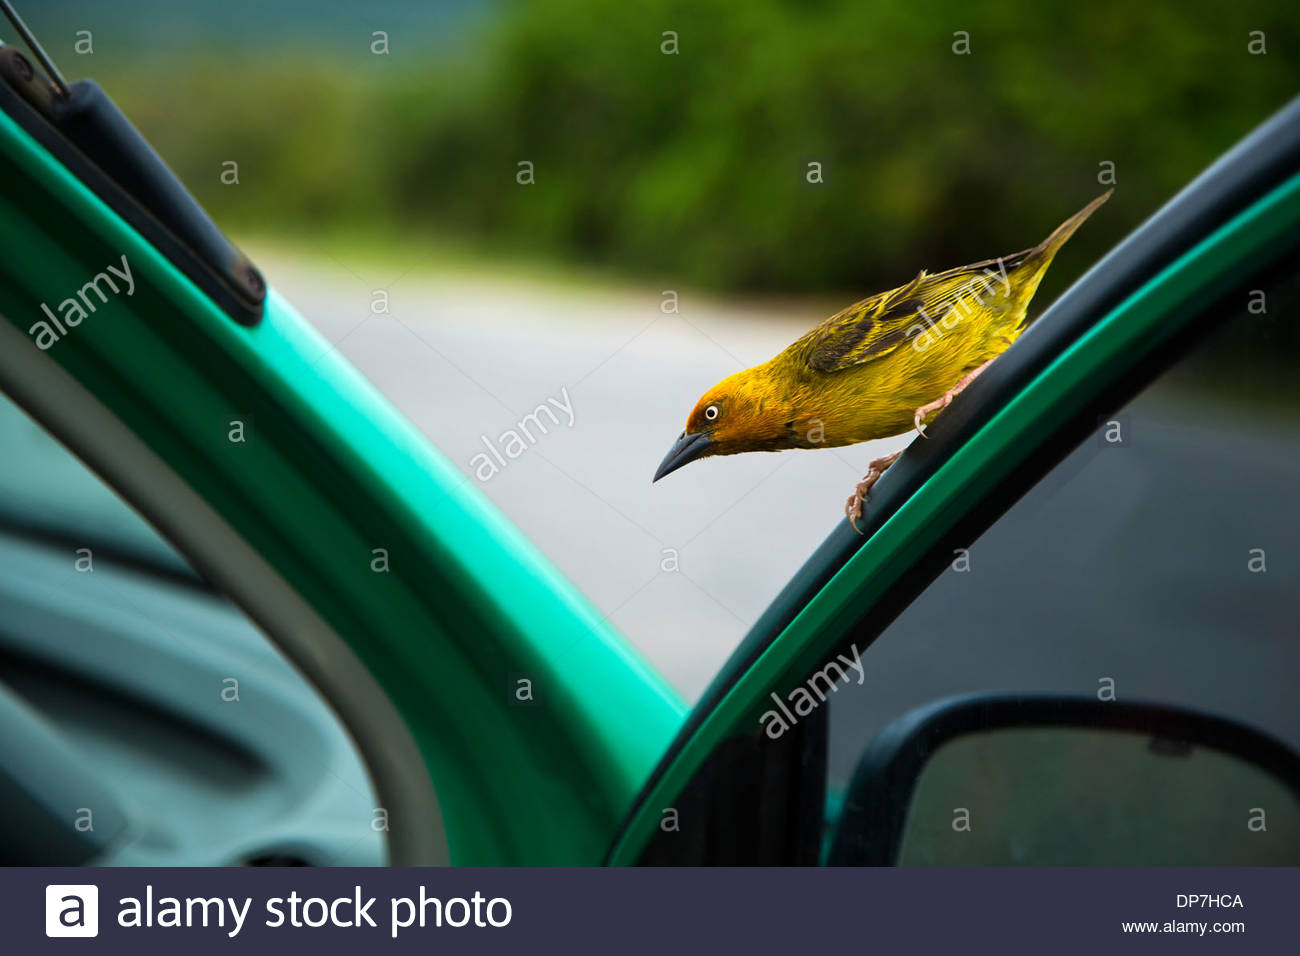 A beautiful Spectacled Weaver sitting on a car door - Stock Image